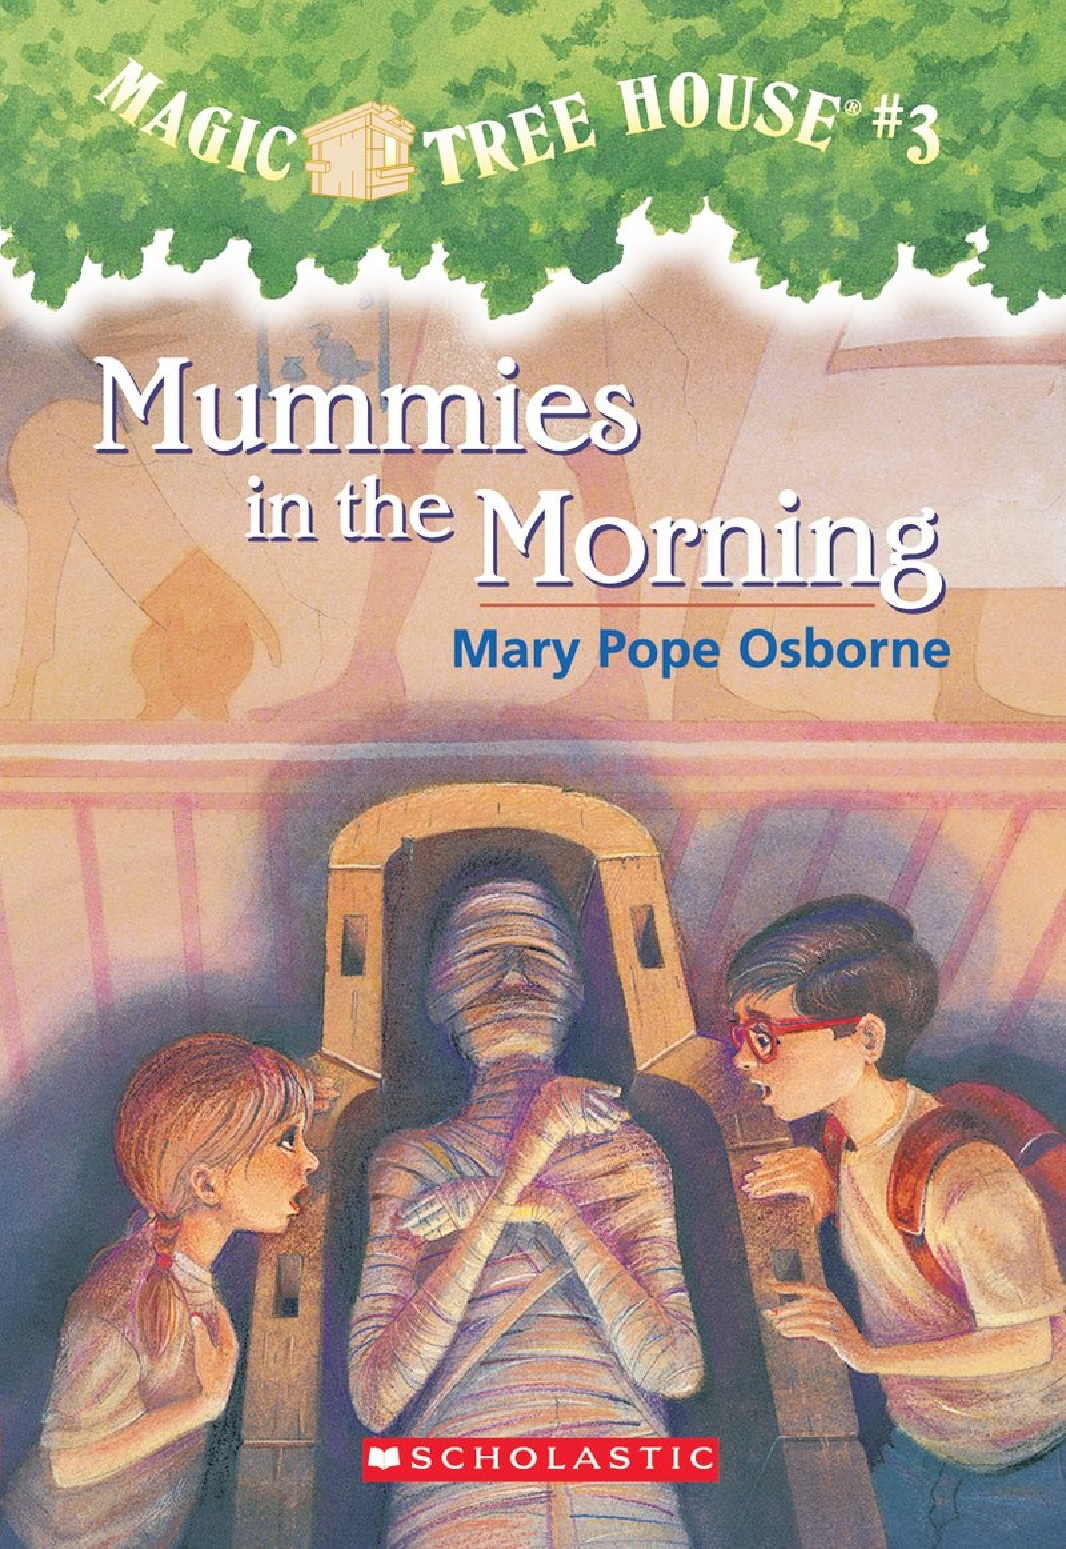 2 00pm Magic Tree House Book Club Weeks Public Library